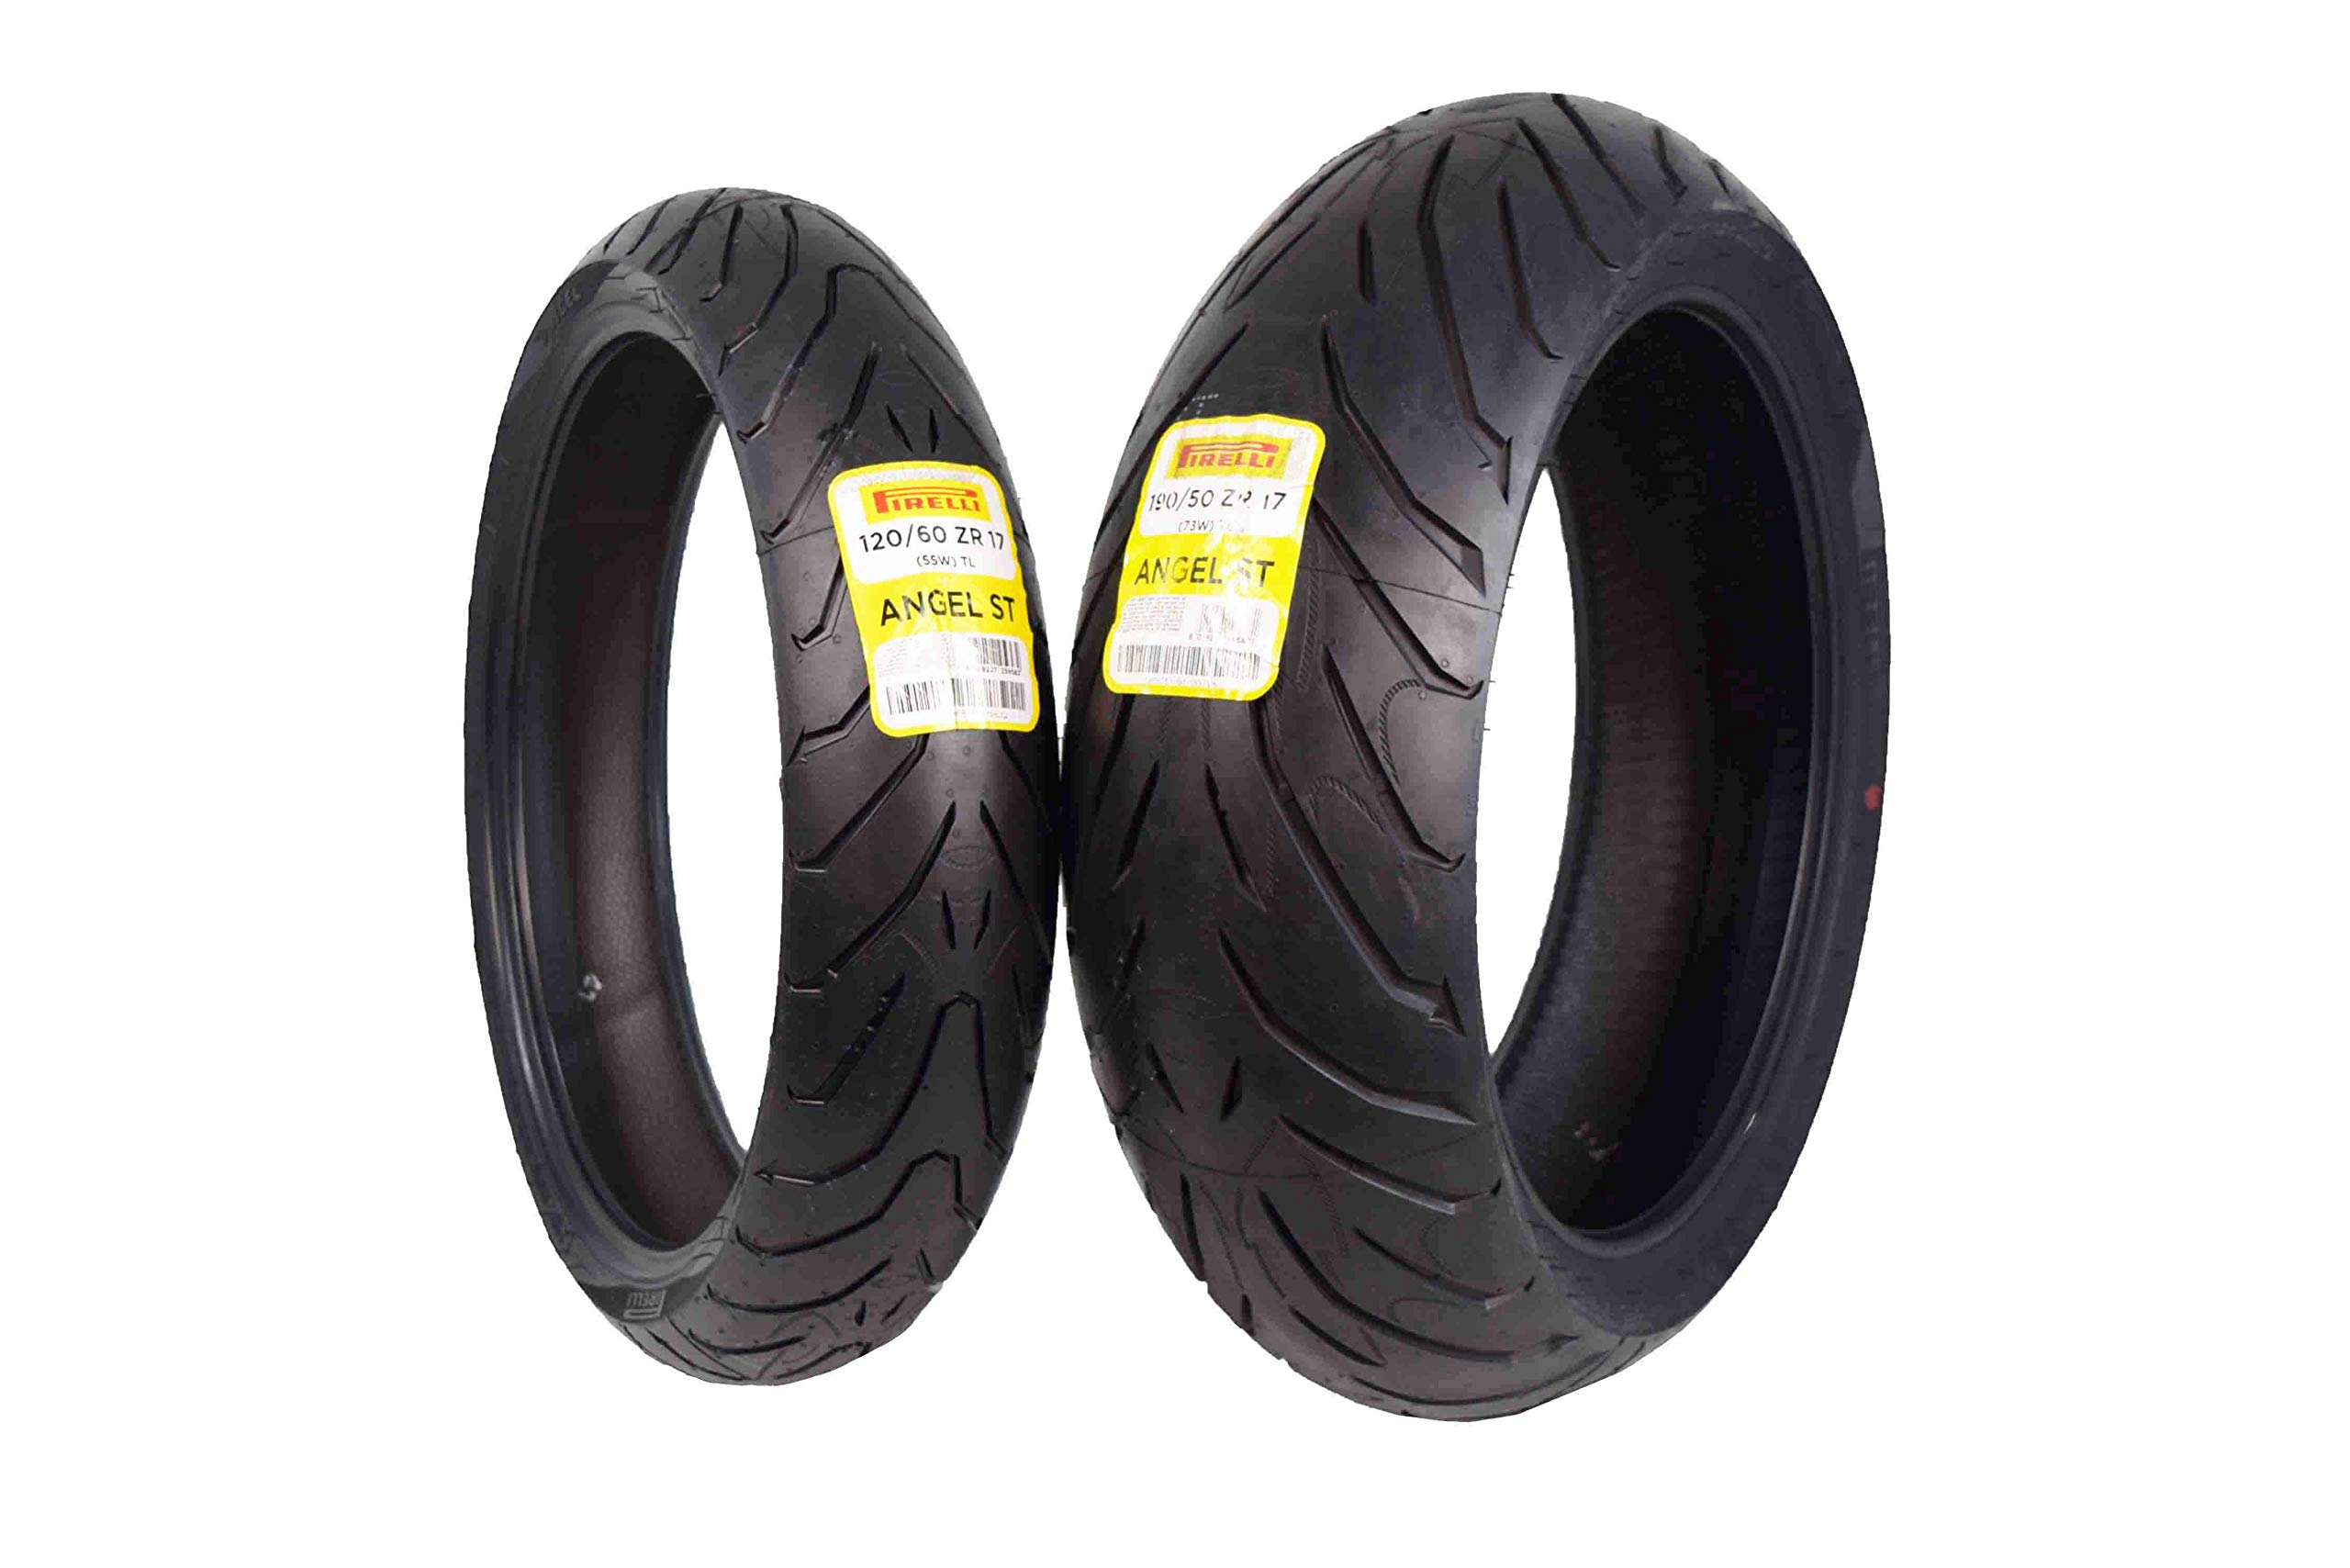 Pirelli Angel ST Front & Rear Street Sport Touring Motorcycle Tires (1x Front 120/60ZR17 1x Rear 190/50ZR17)